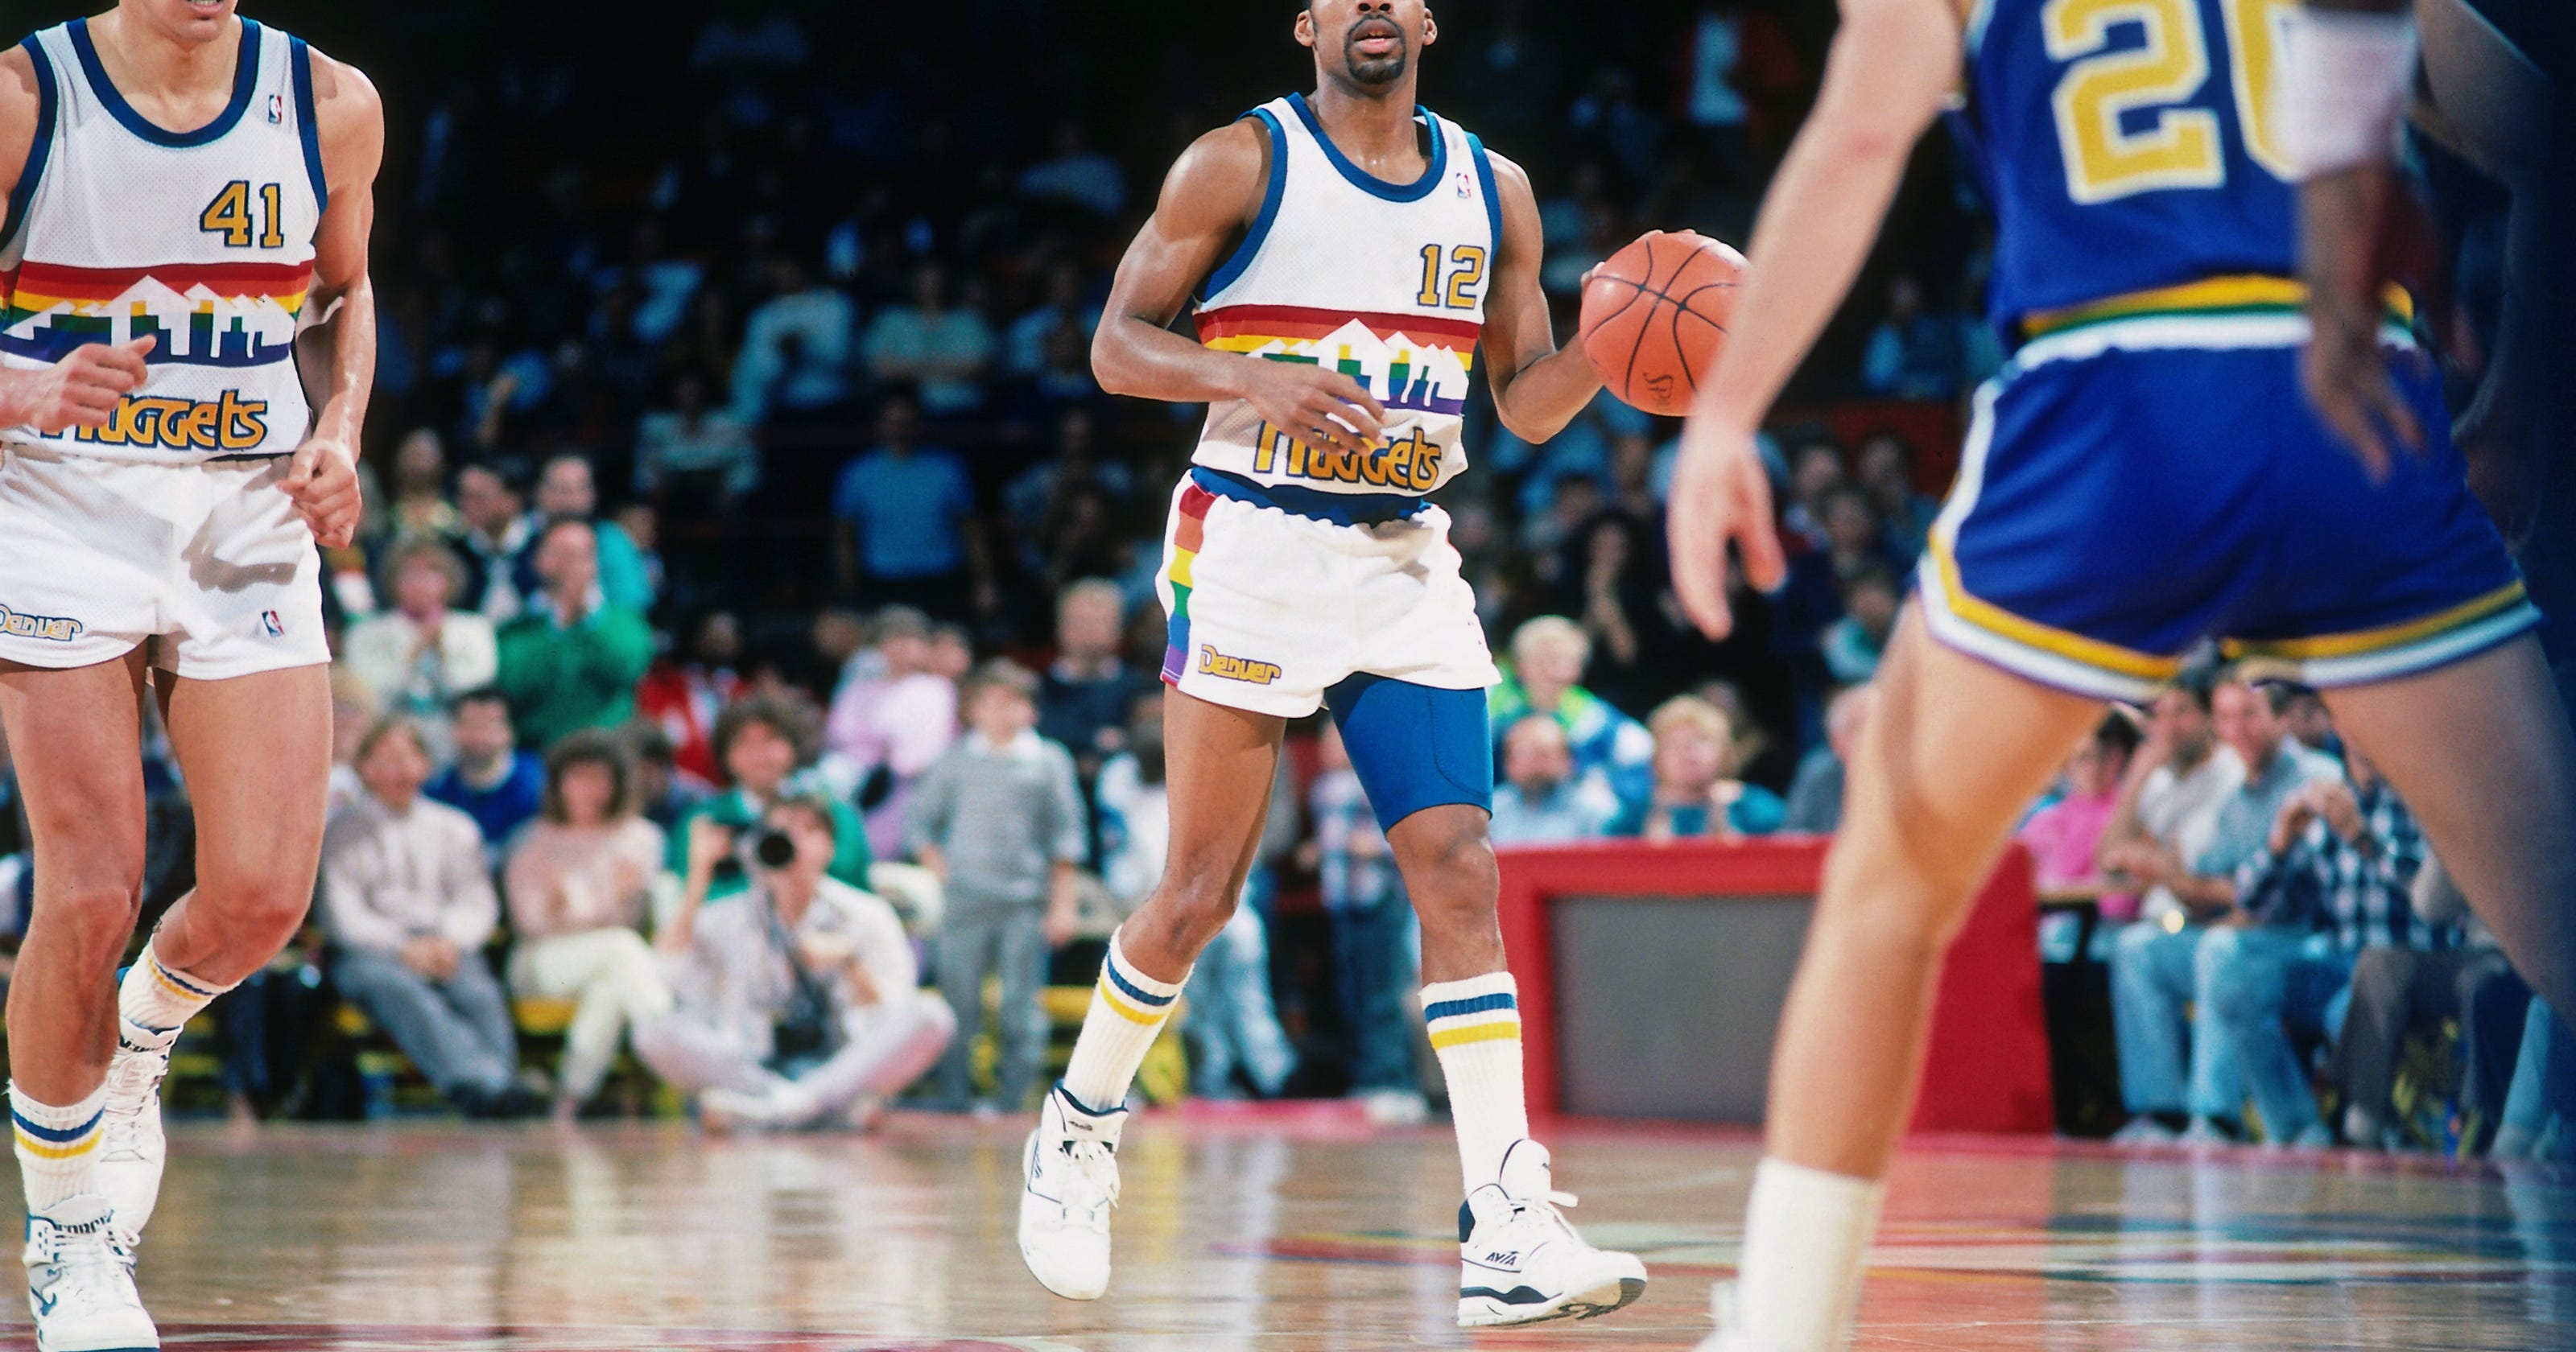 Nuggets bringing back awesome old uniforms 978894a2d